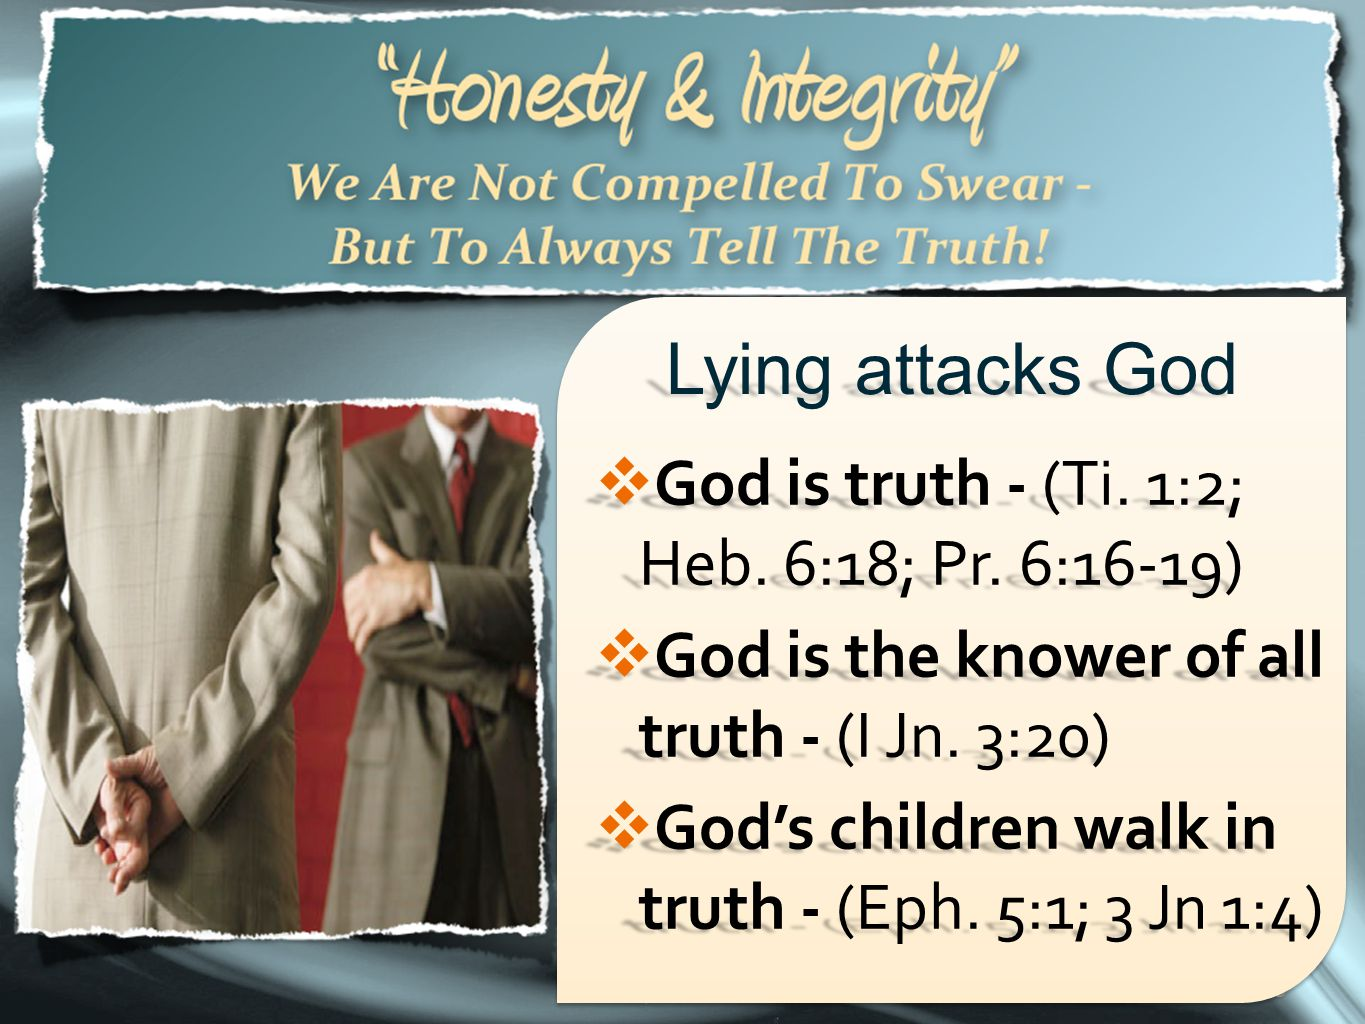 35 Lying attacks God  God is truth - (Ti. 1:2; Heb. 6:18; Pr. 6:16-19)  God is the knower of all truth - (I Jn. 3:20)  God's children walk in truth